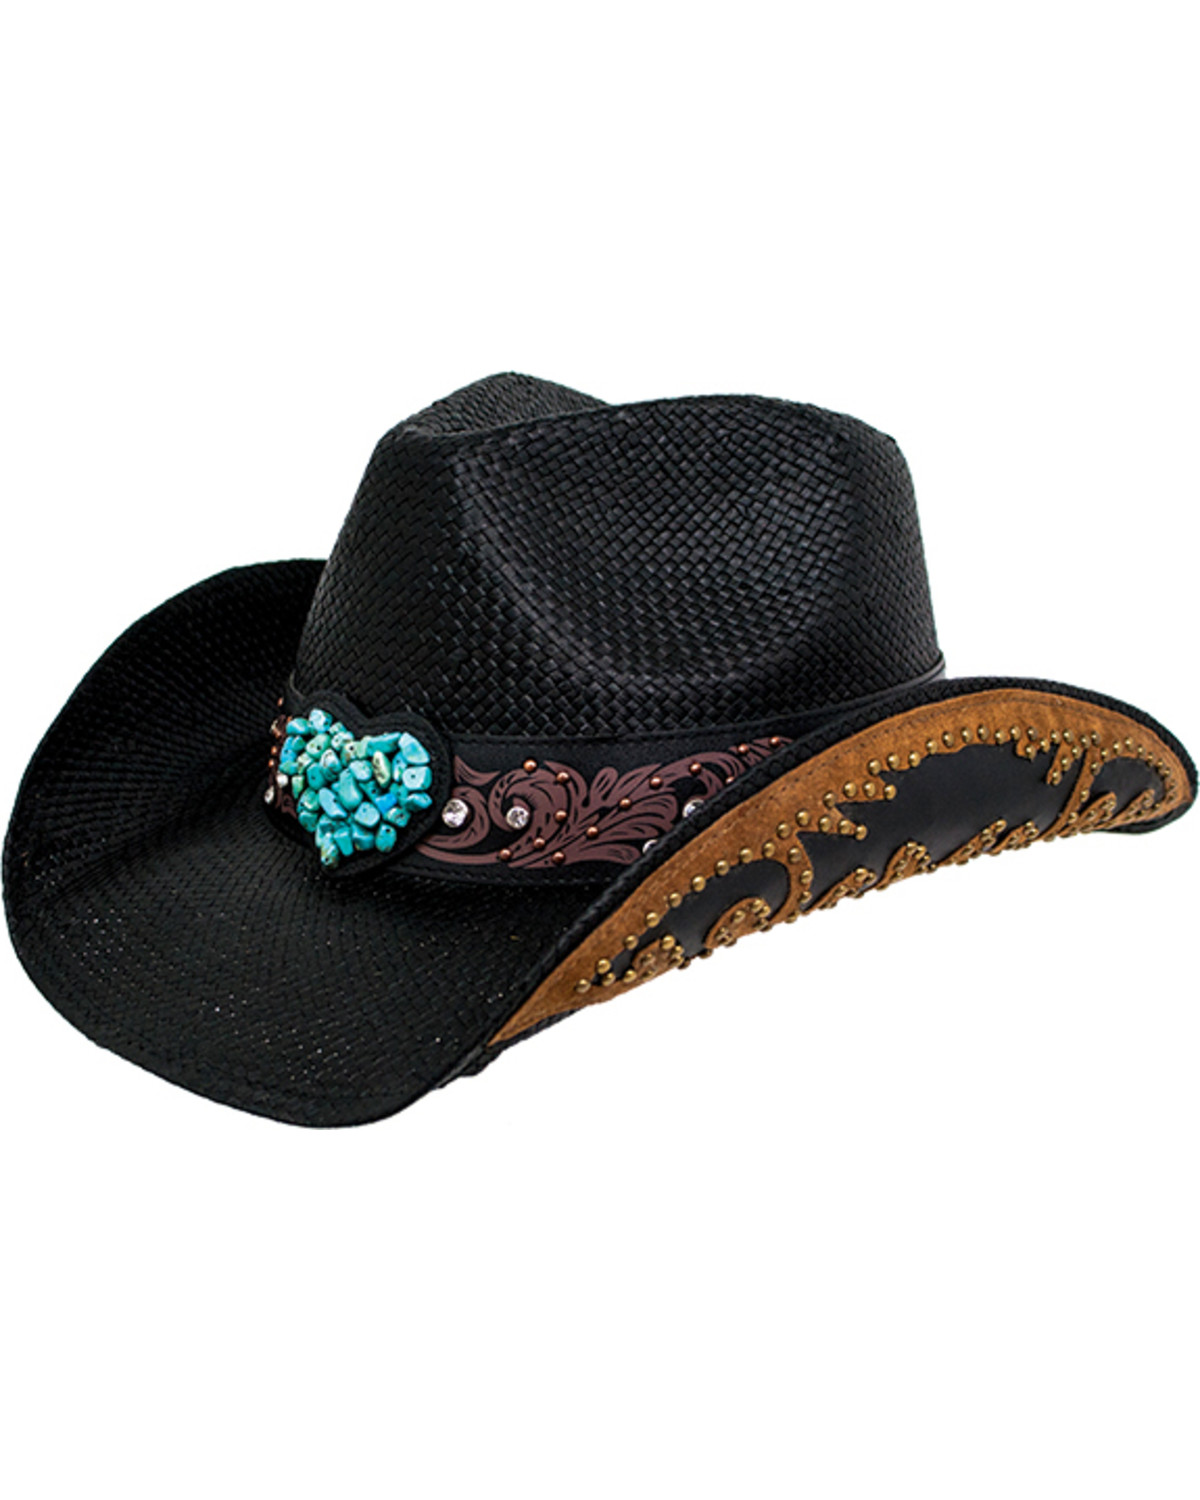 Peter Grimm Women s Black Salona Cowgirl Hat  da6c2901d0b